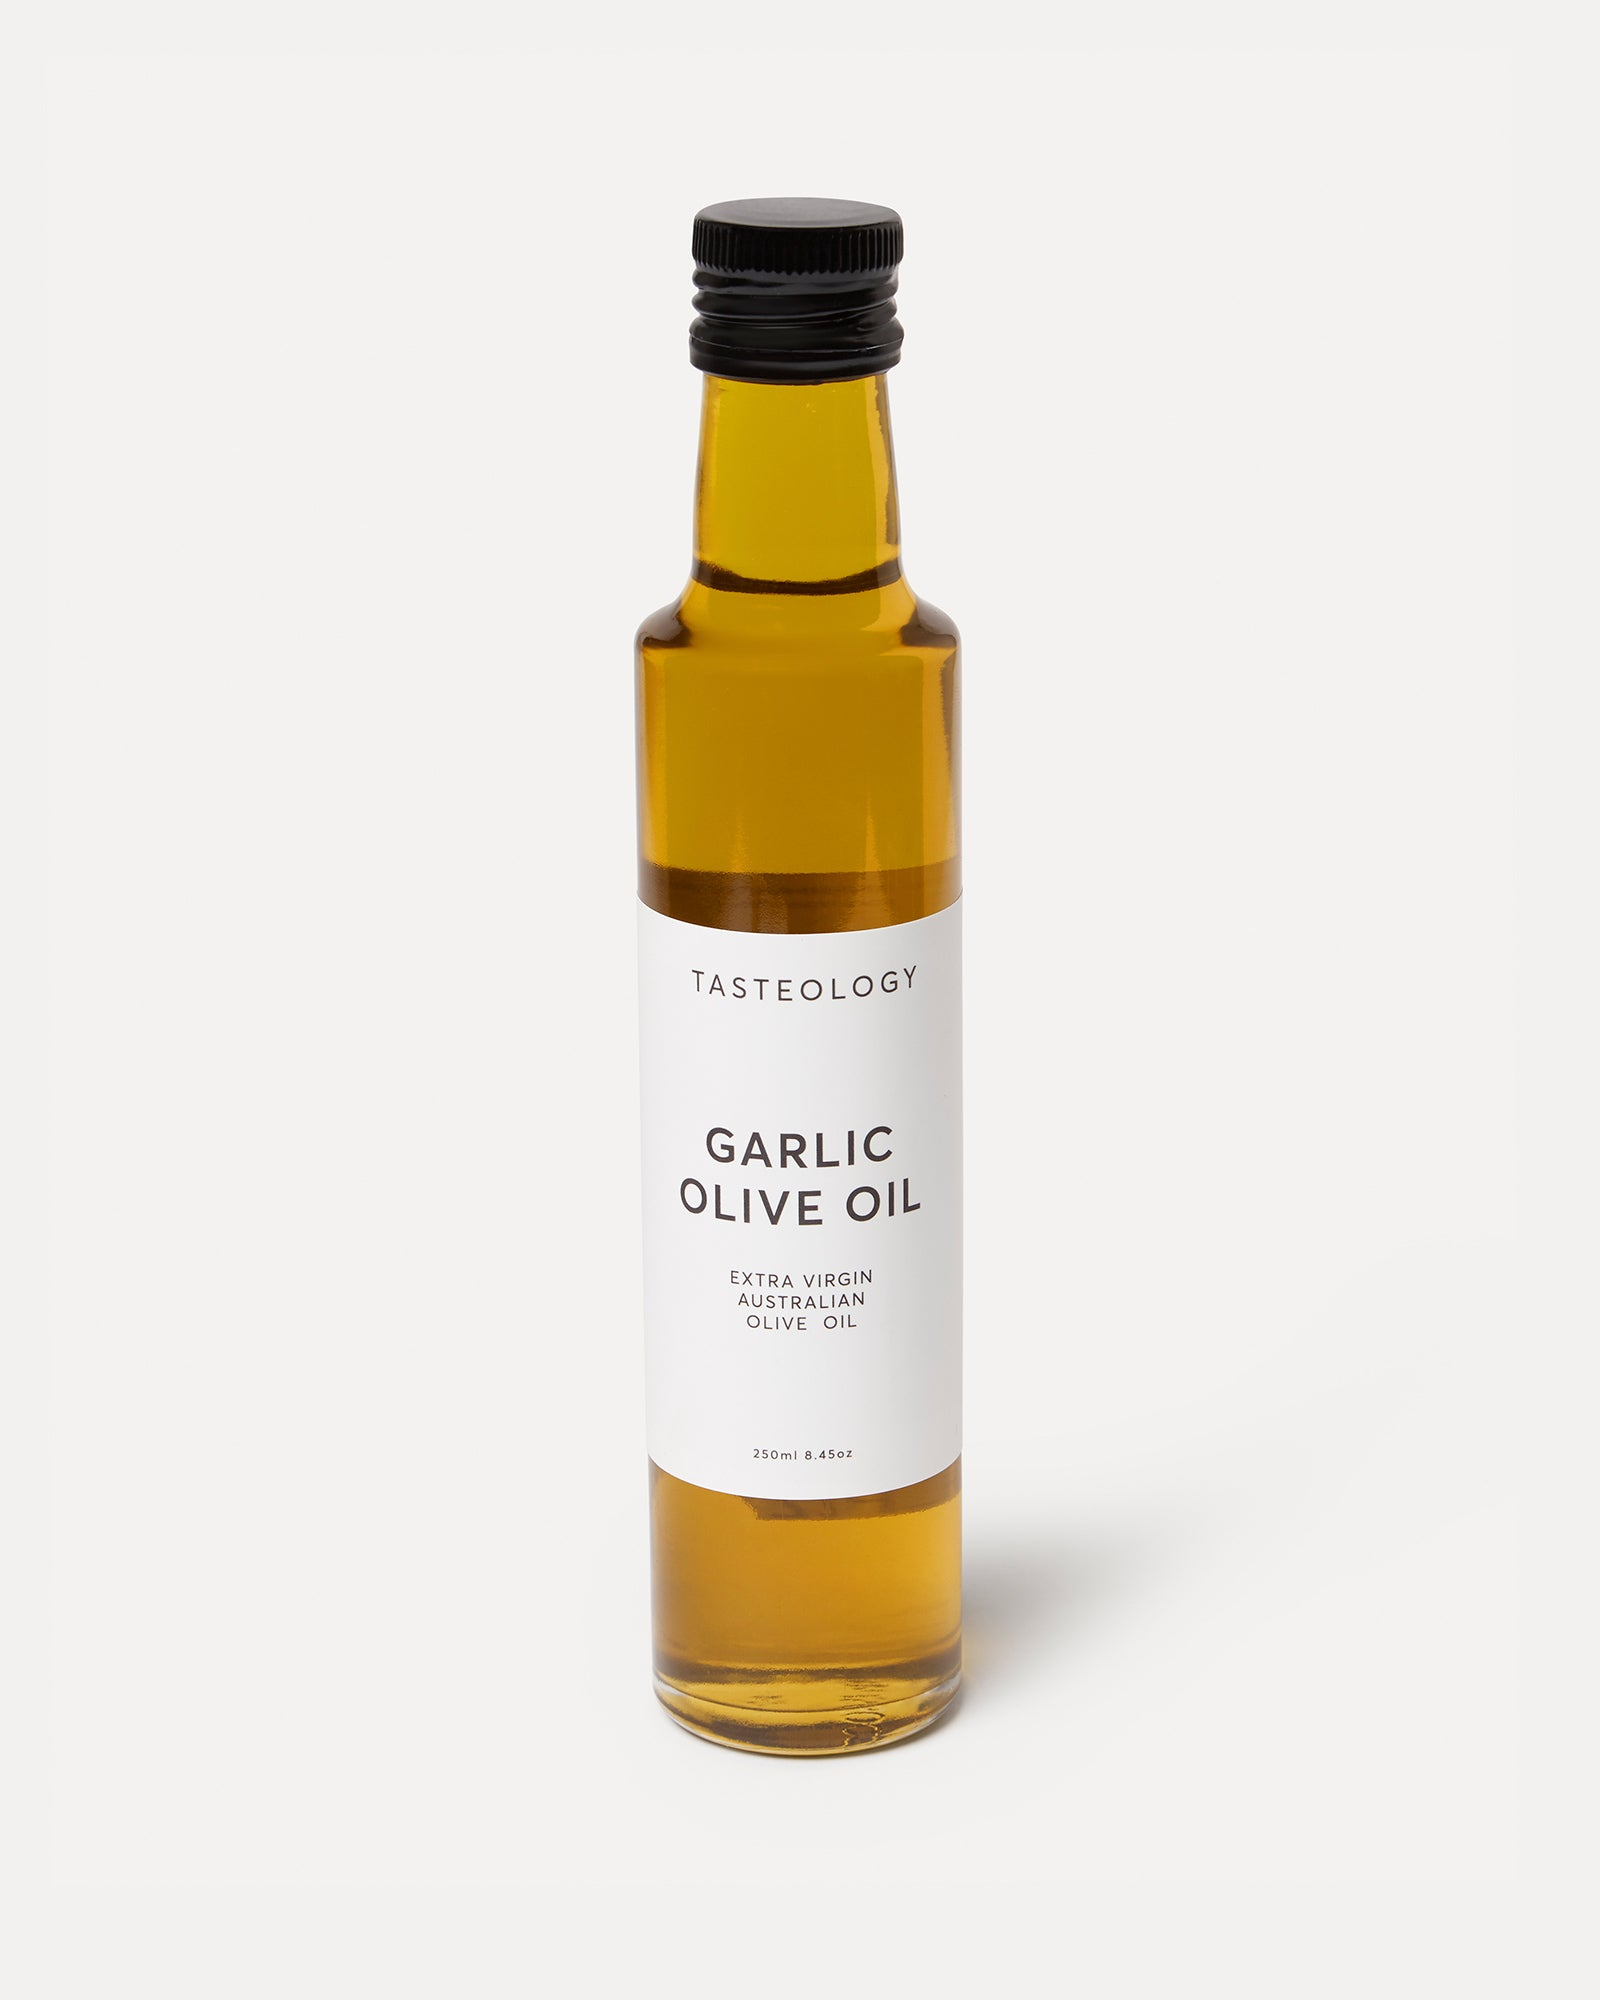 Tasteology Extra Virgin Olive Oil Garlic